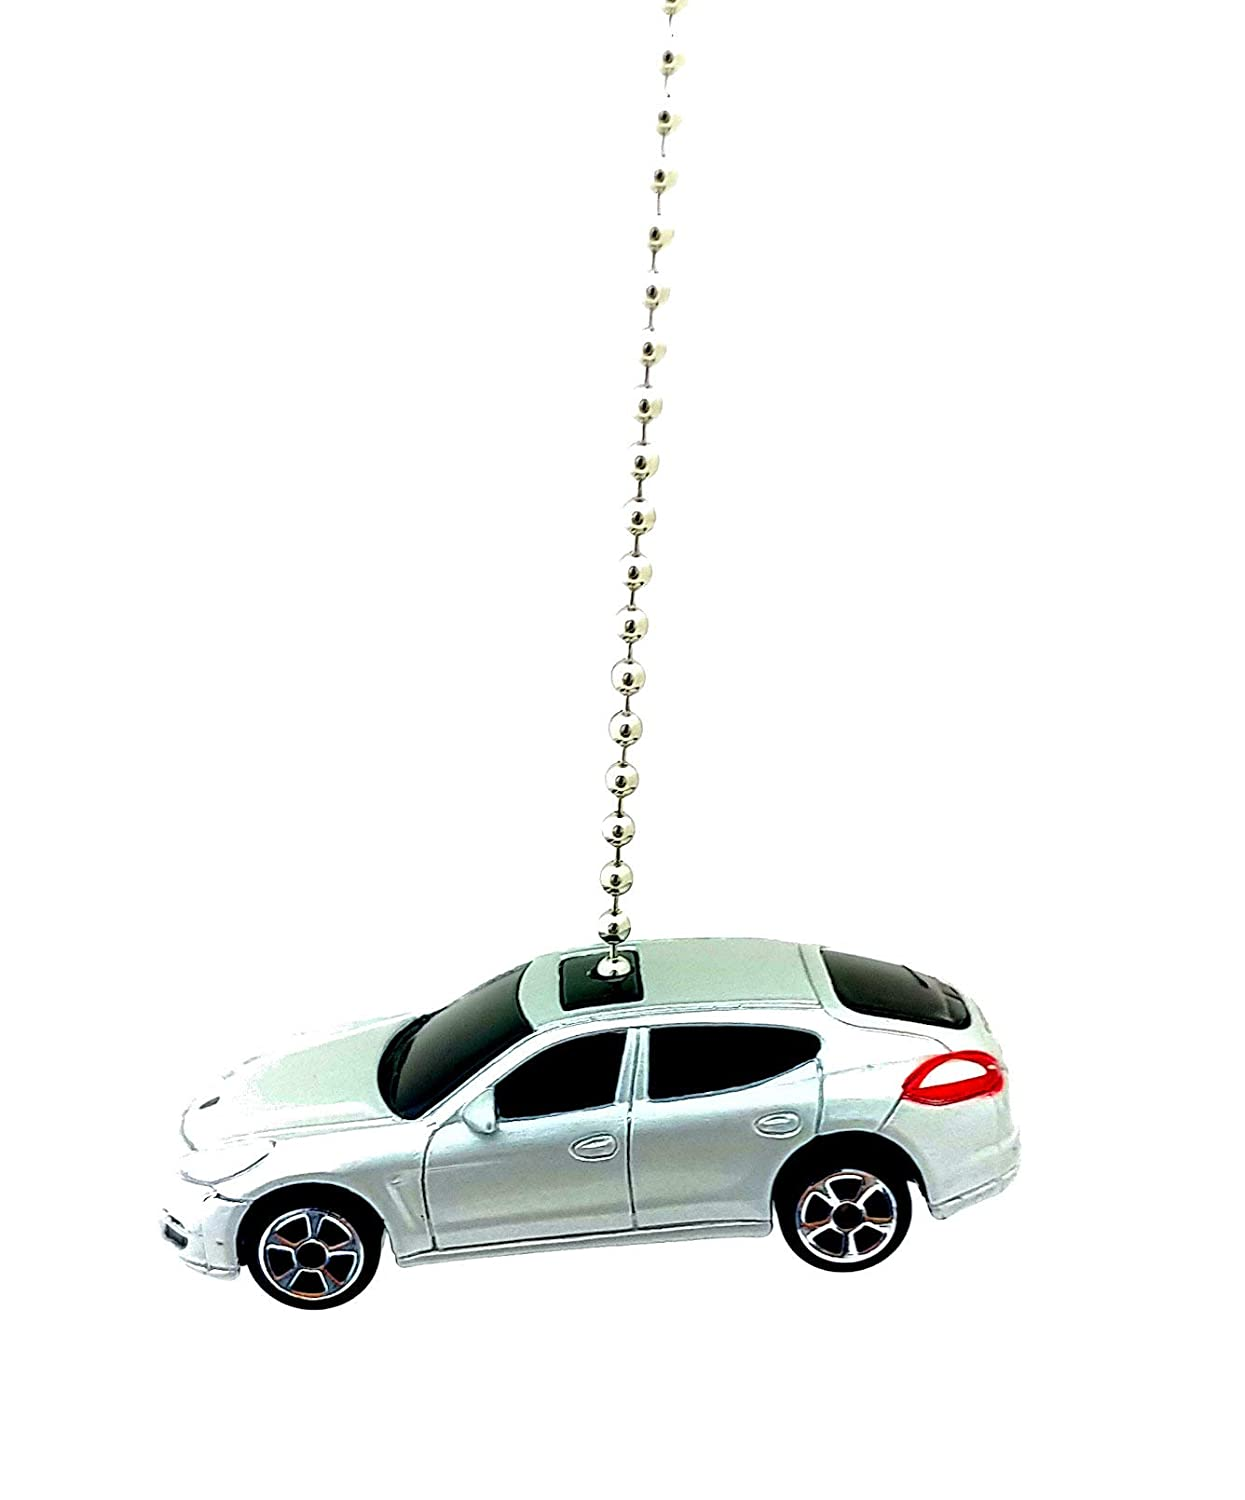 Maisto Porsche Diecast Ceiling Fan Light Chain Pulls 1/64 (Porsche Panamera Turbo - Silver) - - Amazon.com